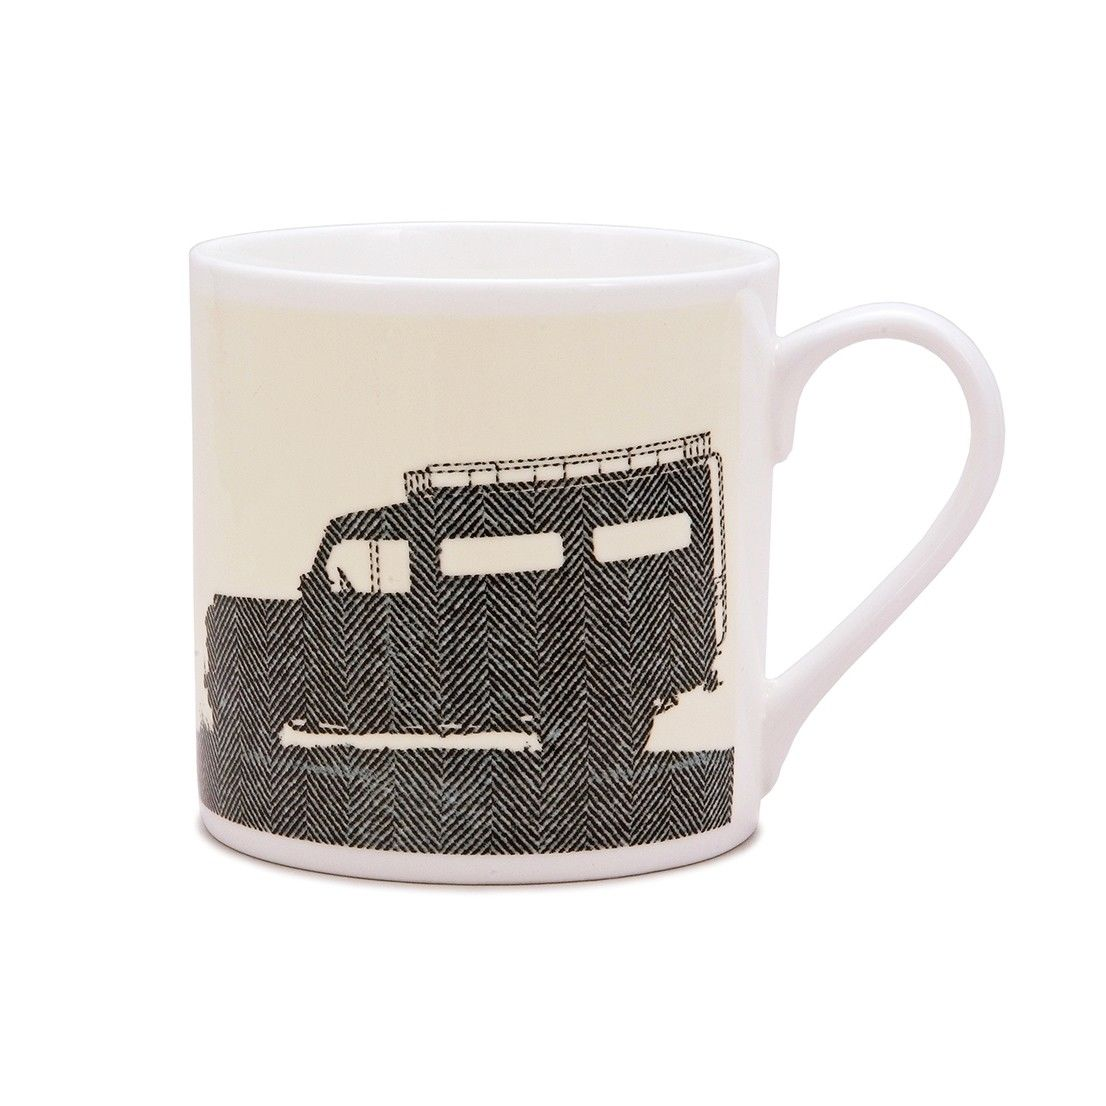 Tweed Landrover Mug, Large - product image